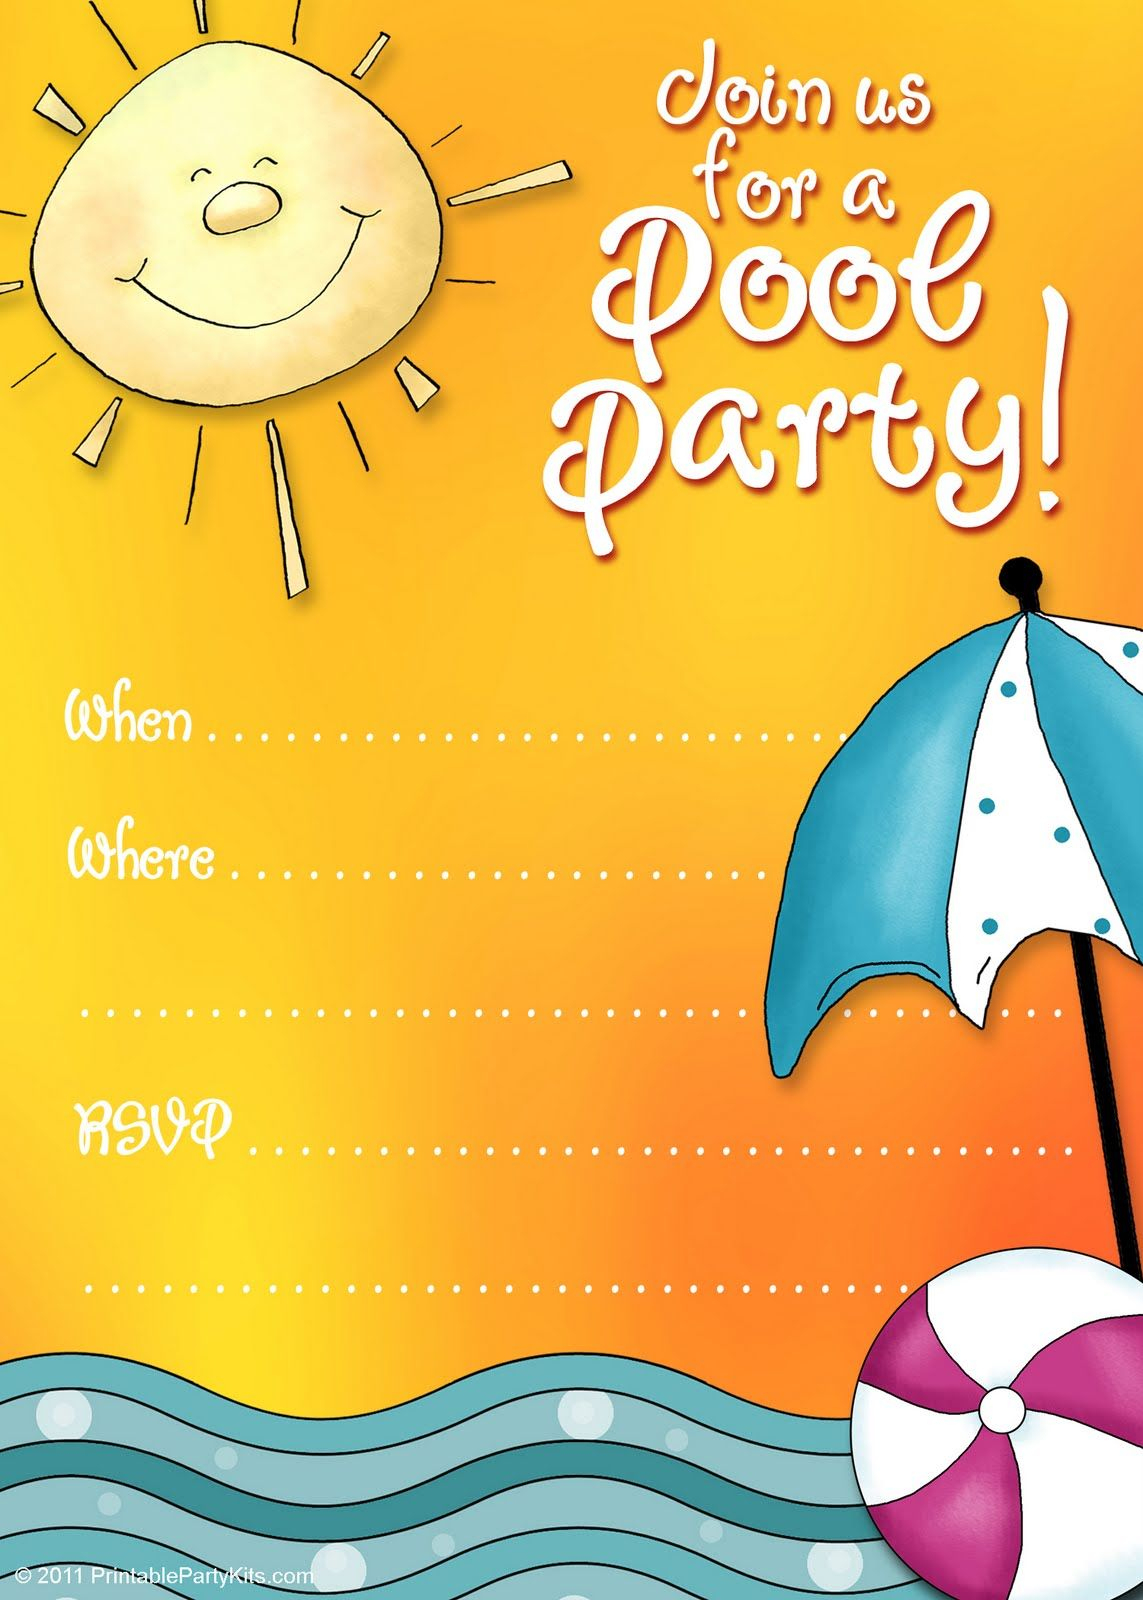 Free Printable Party Invitations: Summer Pool Party Invites - Free Printable Water Park Birthday Invitations